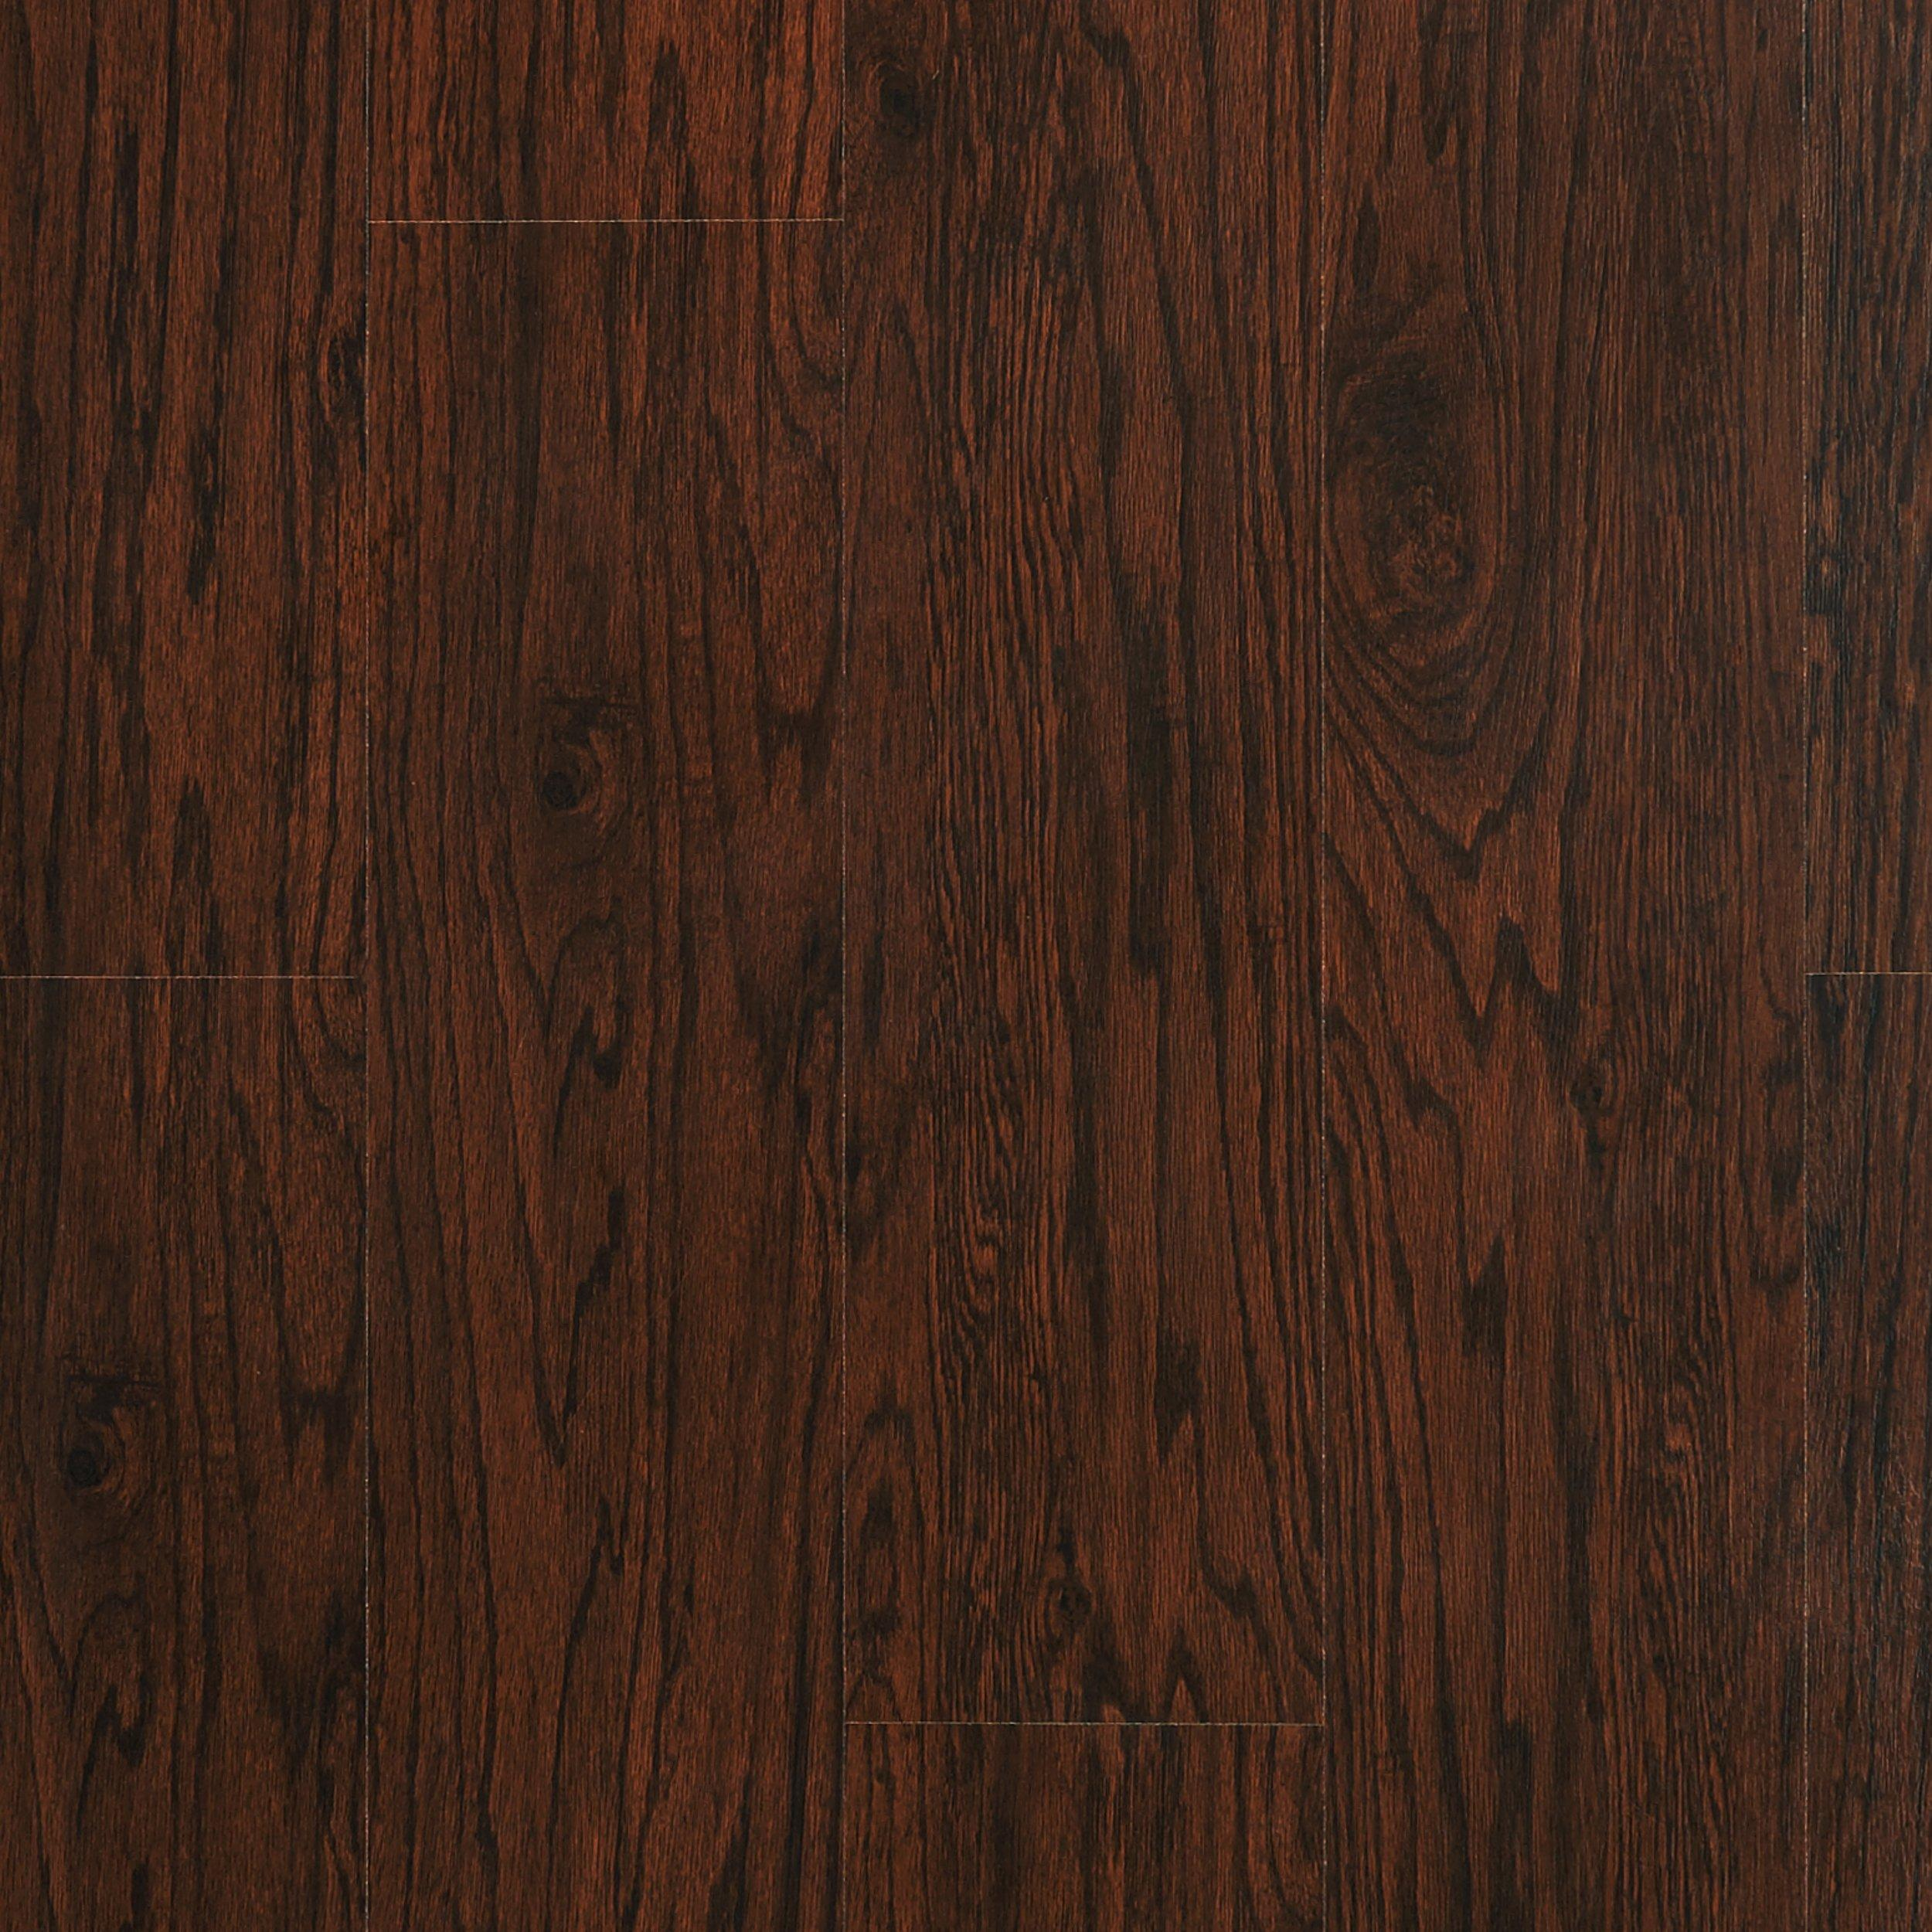 Floor Decor In Norco Ca Laminate Flooring Floor Decor